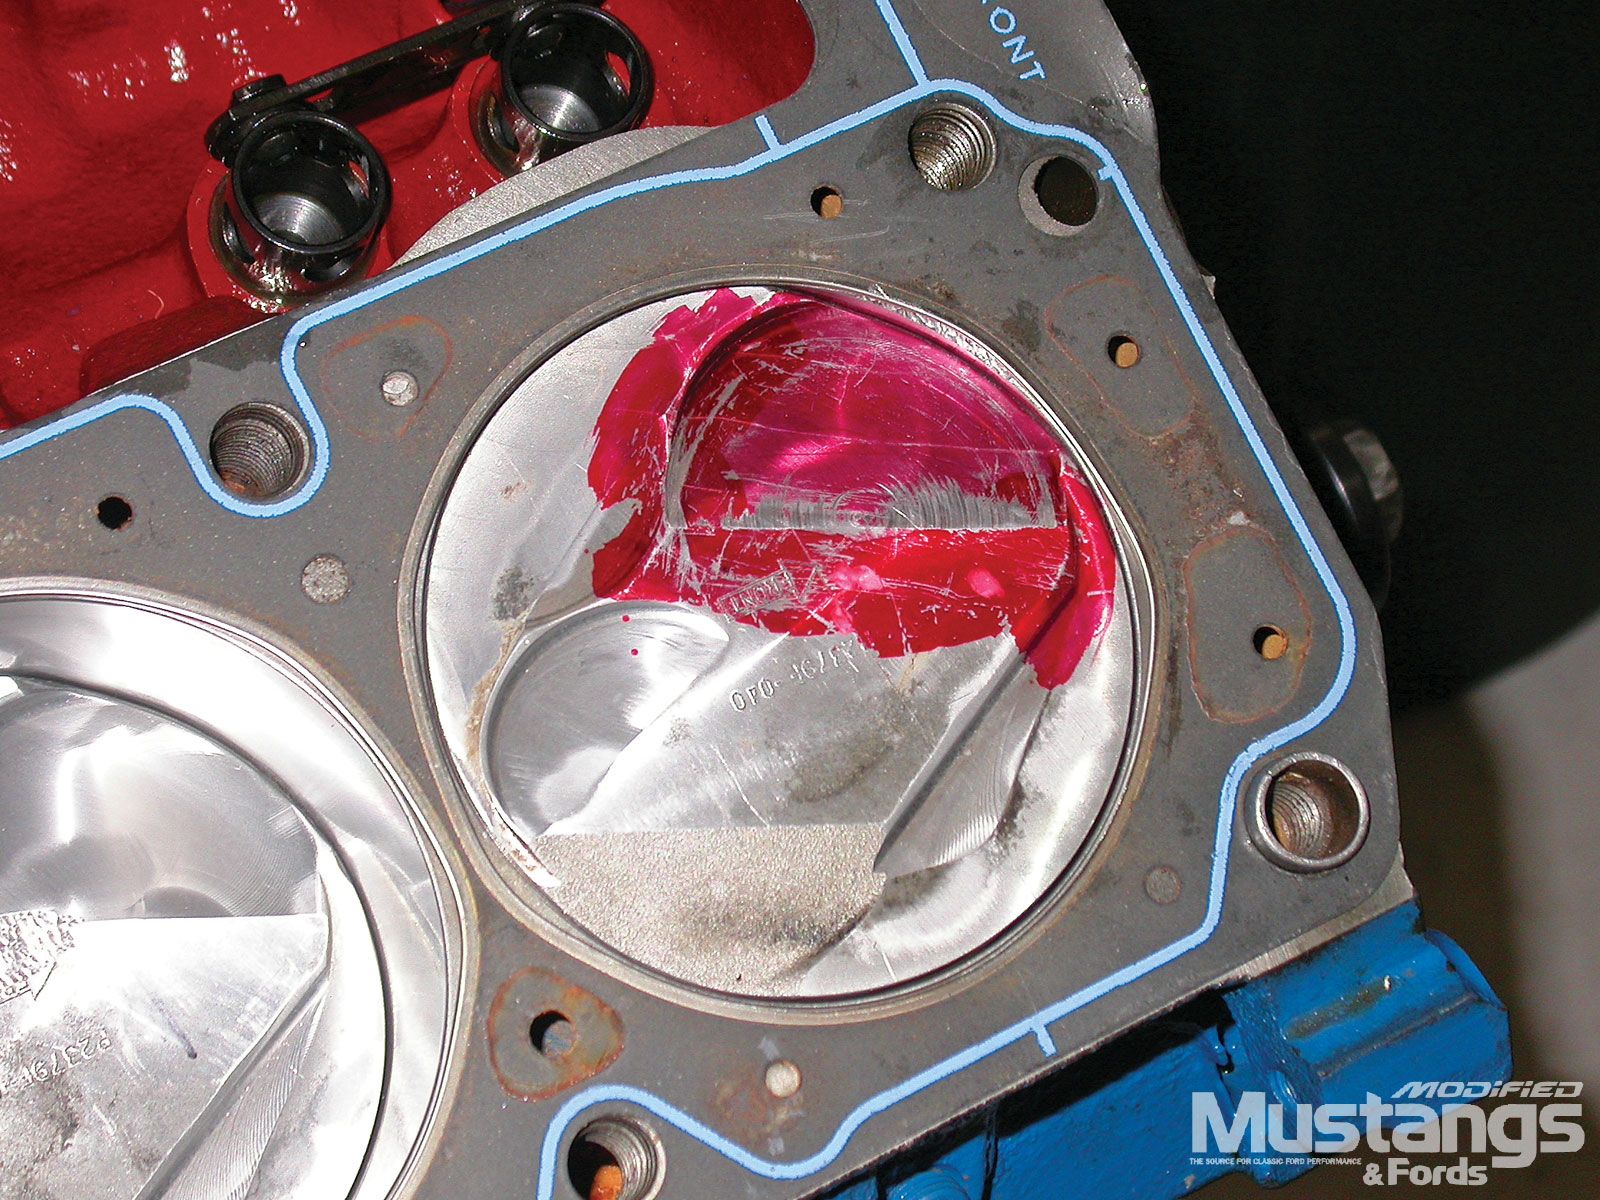 Ford Boss 302 Engine Build Piston Valve Clearance